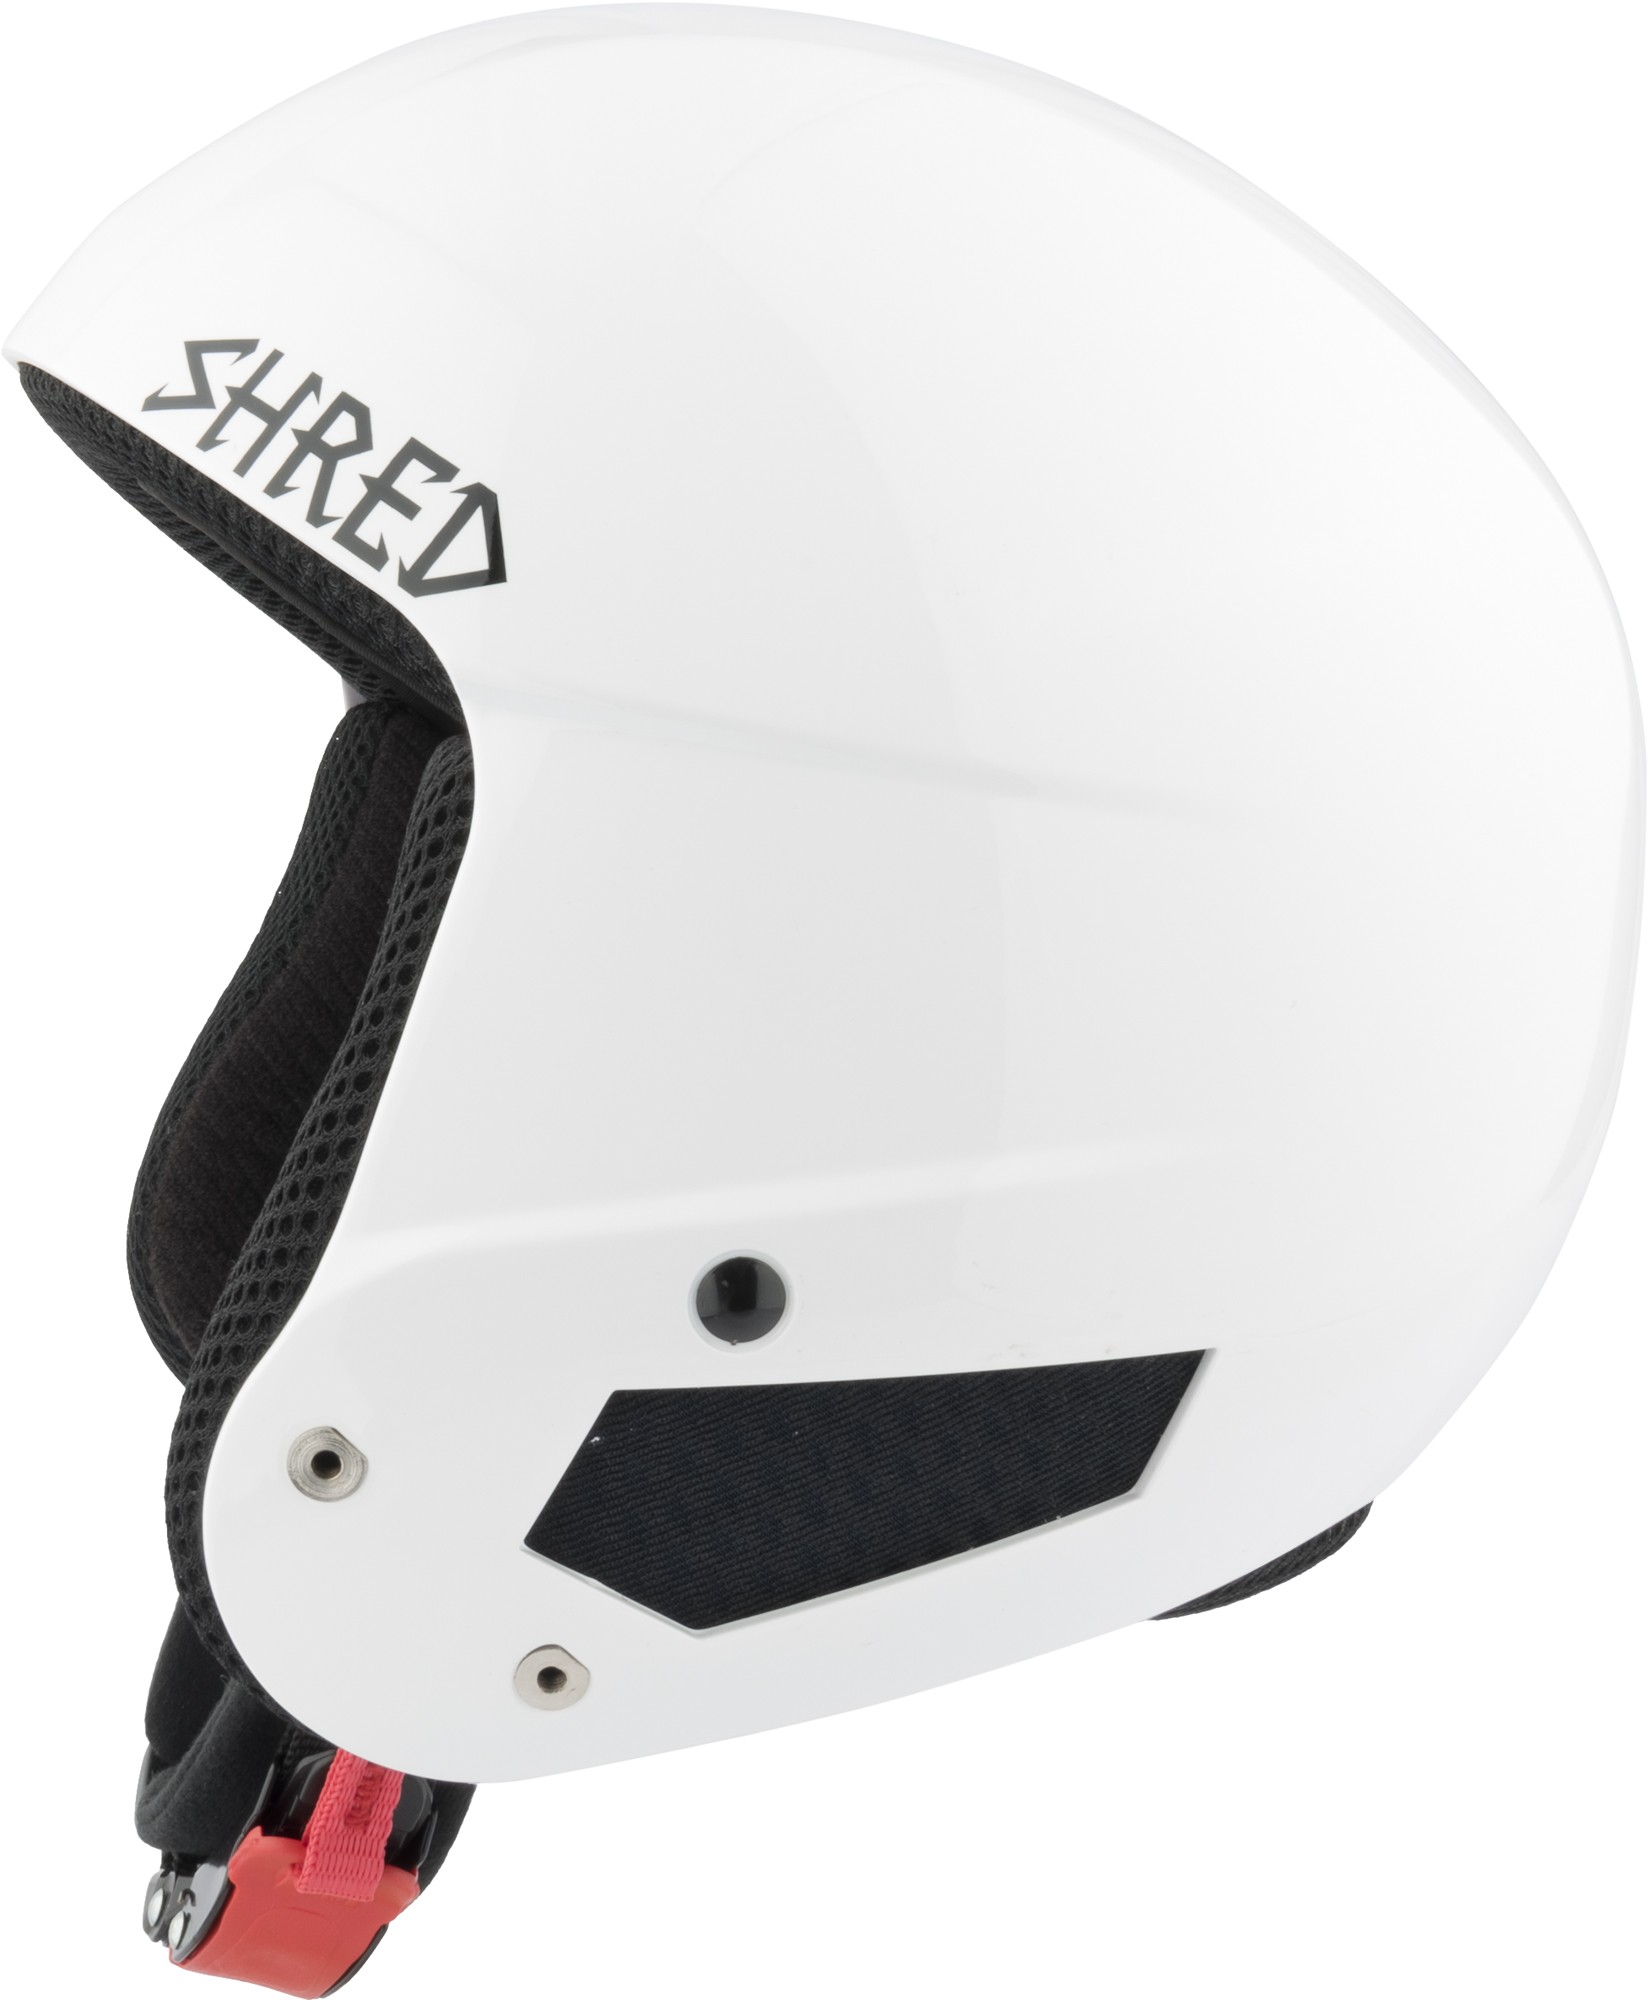 Shred Mega Brain Bucket RH FIS WIPEOUT ski helmet, 2017